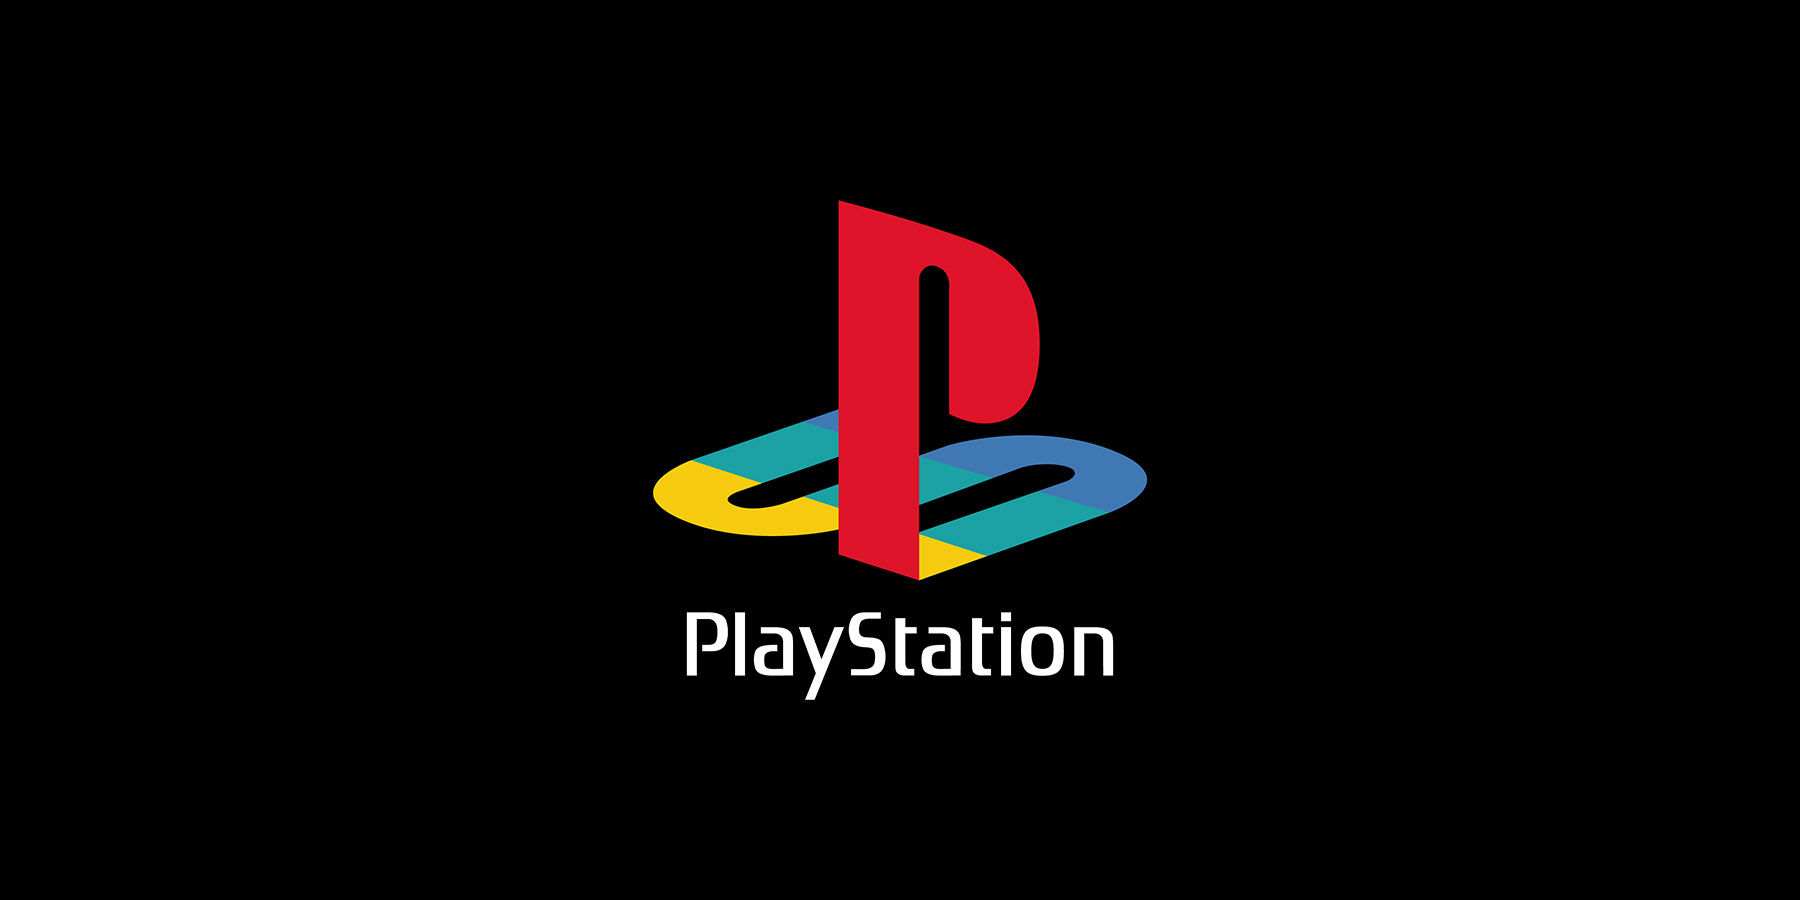 Playstation 4 Logo Wallpaper